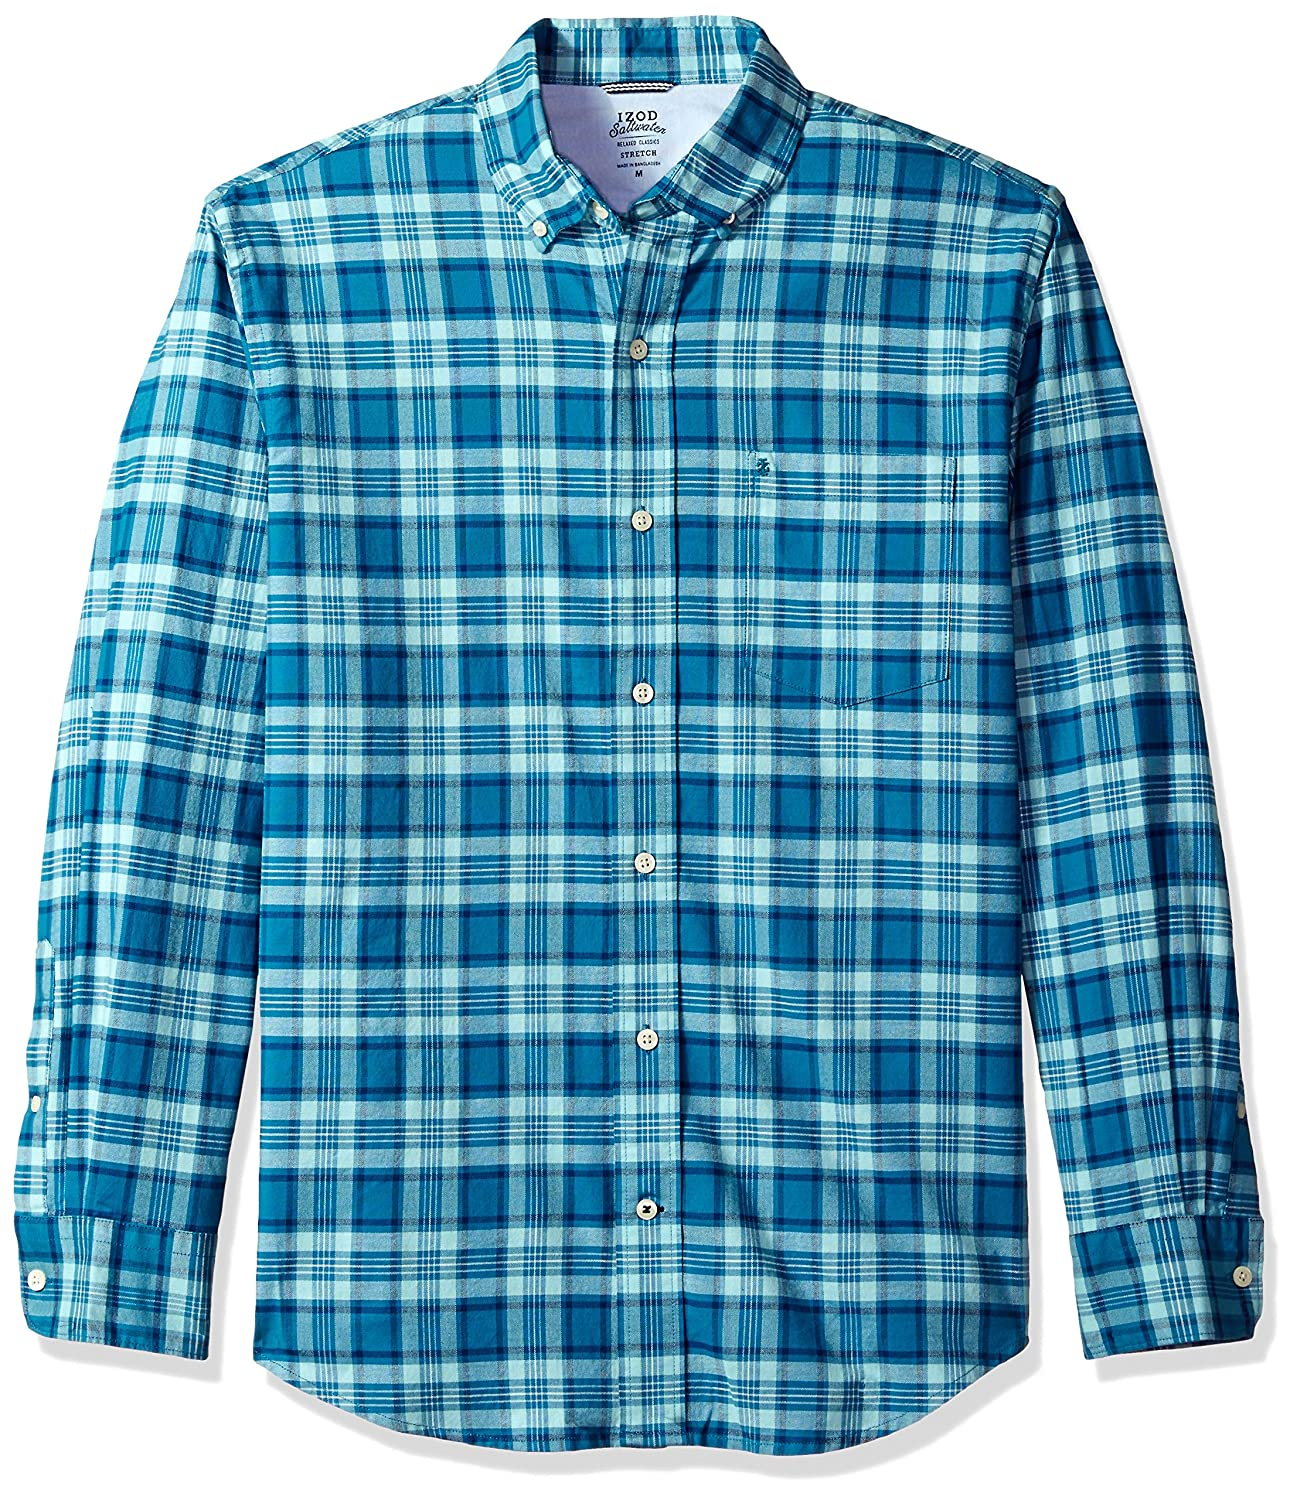 Izod mens Oxford Plaid Long Sleeve Shirt IZOD Men's Sportswear 45SW476